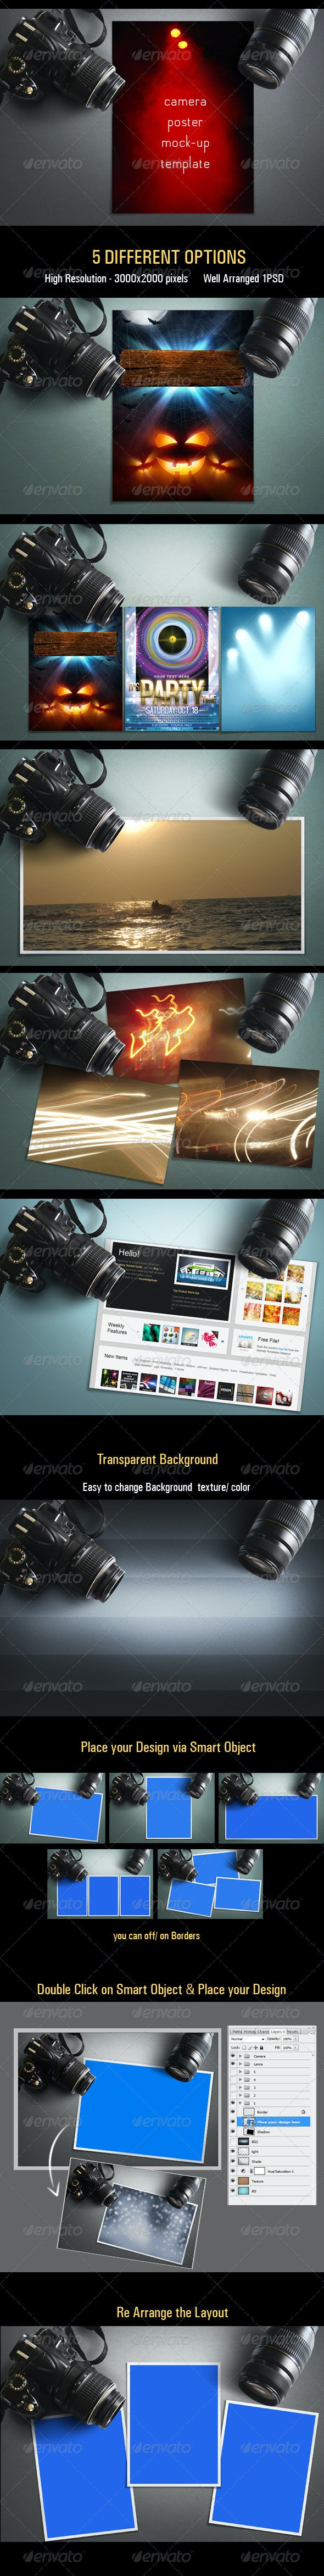 Camera Poster Mock-up Template - Posters Print